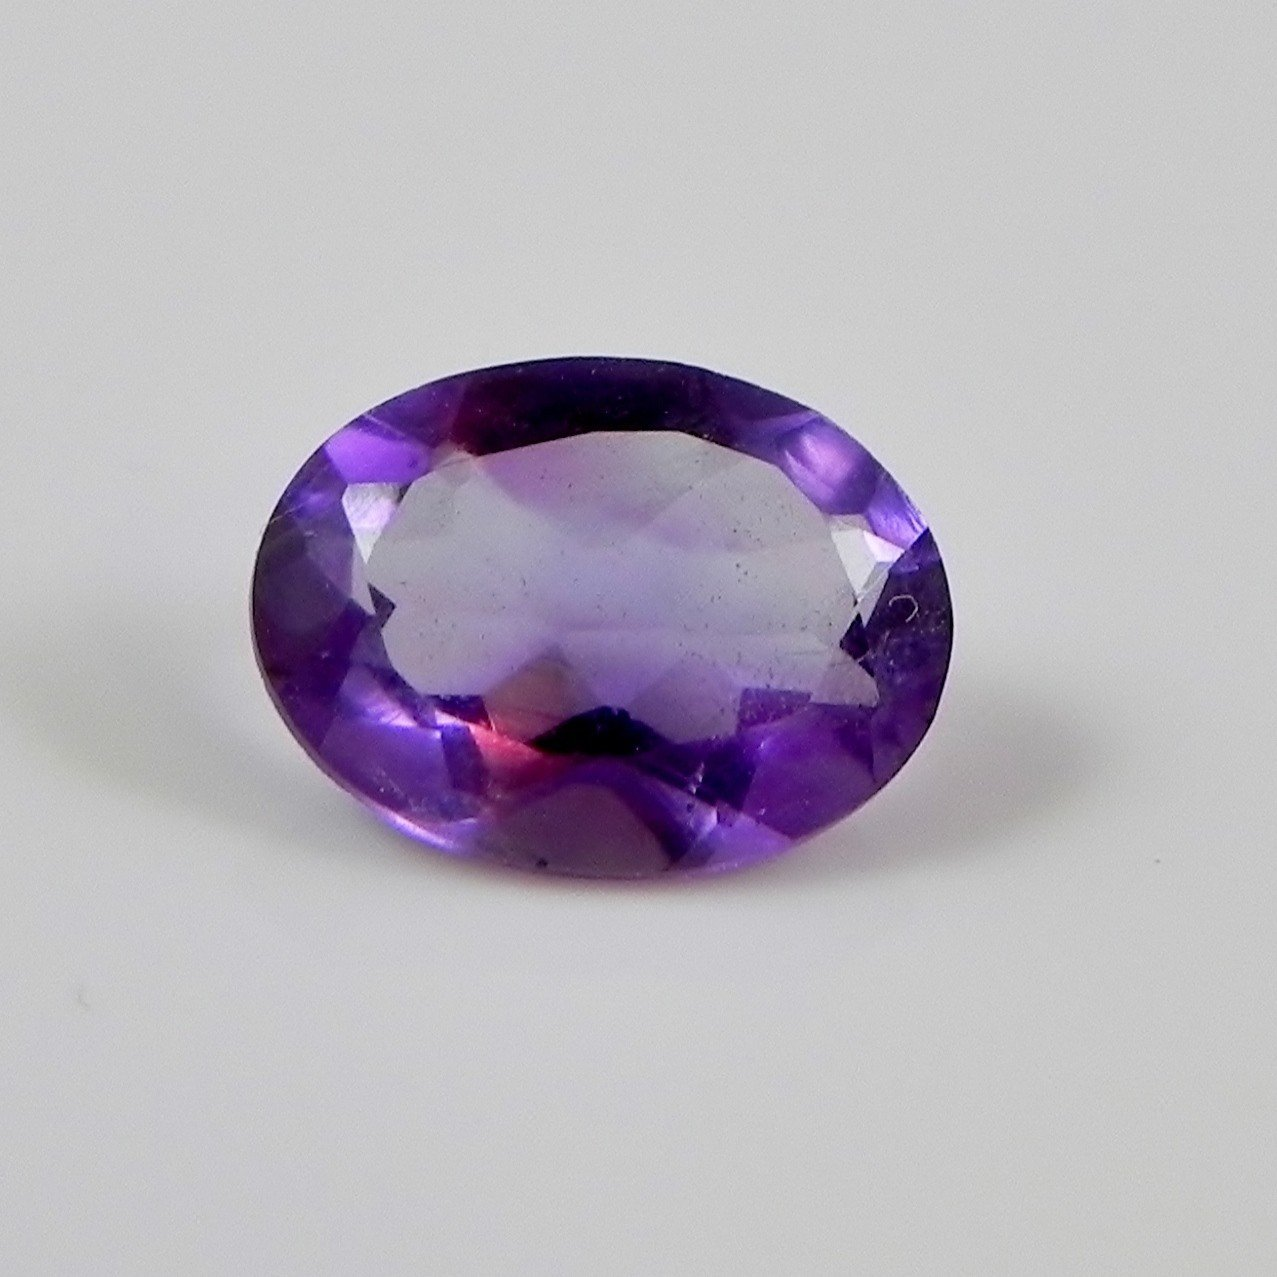 Certified Natural Amethyst AAA Quality 10x12 mm Faceted Oval 2 pcs Pair loose gemstone